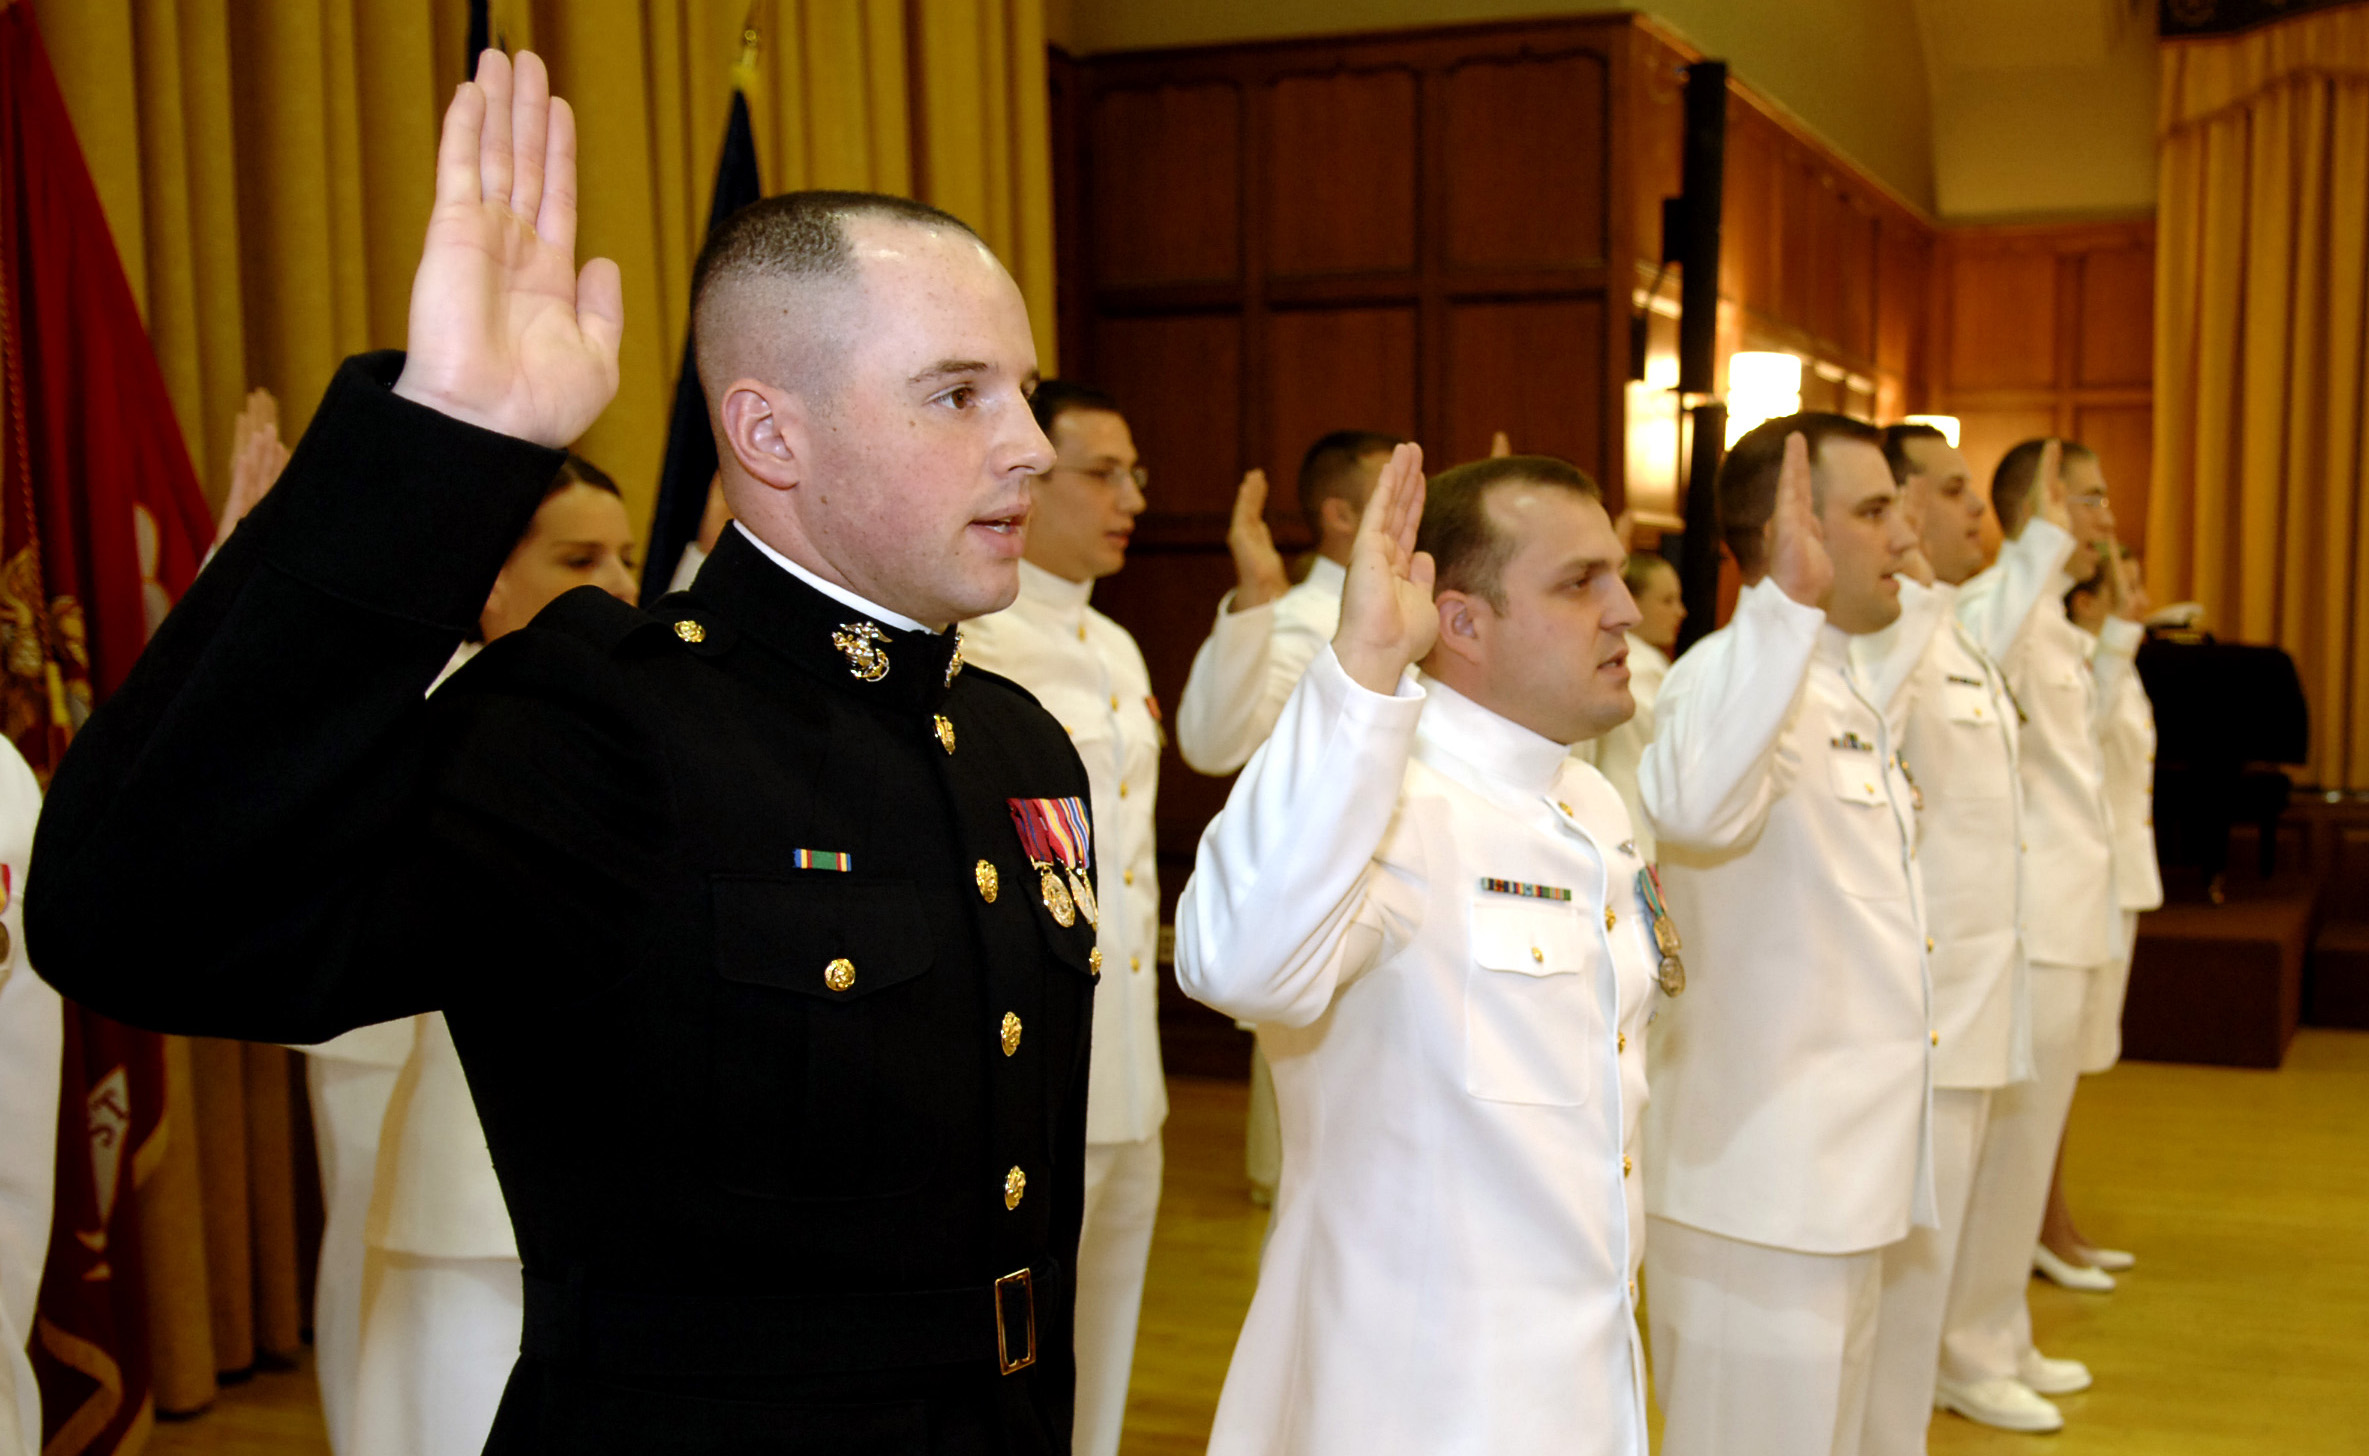 2nd Lt. Mike White, recites the oath of office from then Secretary of the Navy (SECNAV), the Honorable Dr. Donald C. Winter during a commissioning ceremony in 2007. US Navy Photo